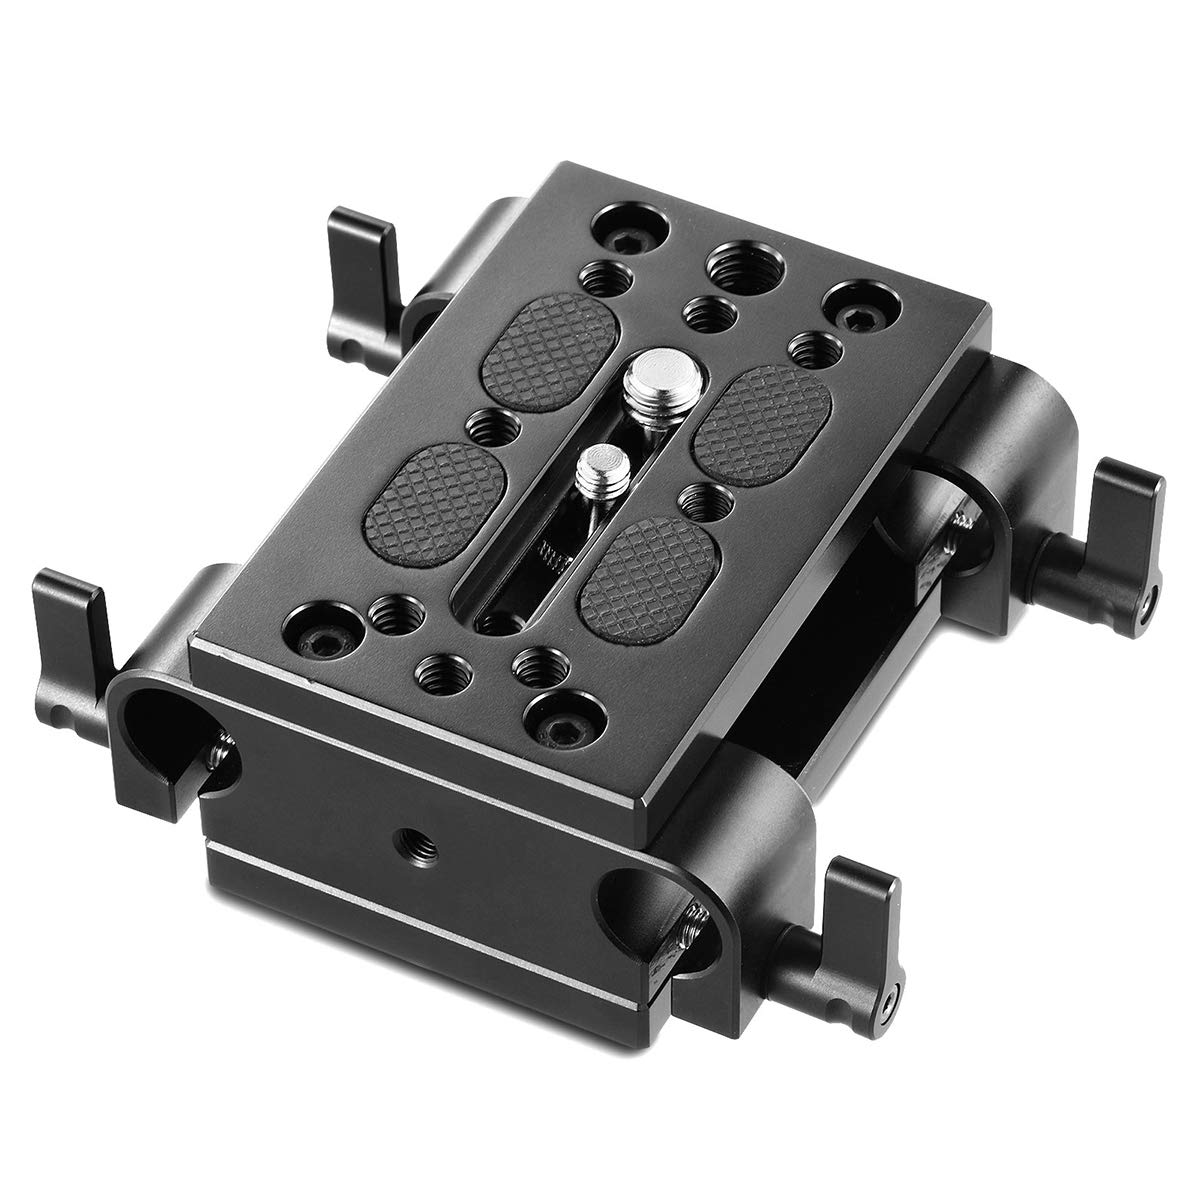 SMALLRIG Camera Tripod Mounting Baseplate w/15mm Rod Clamp Rail Block for Tripod/Shoulder Support System - 1798